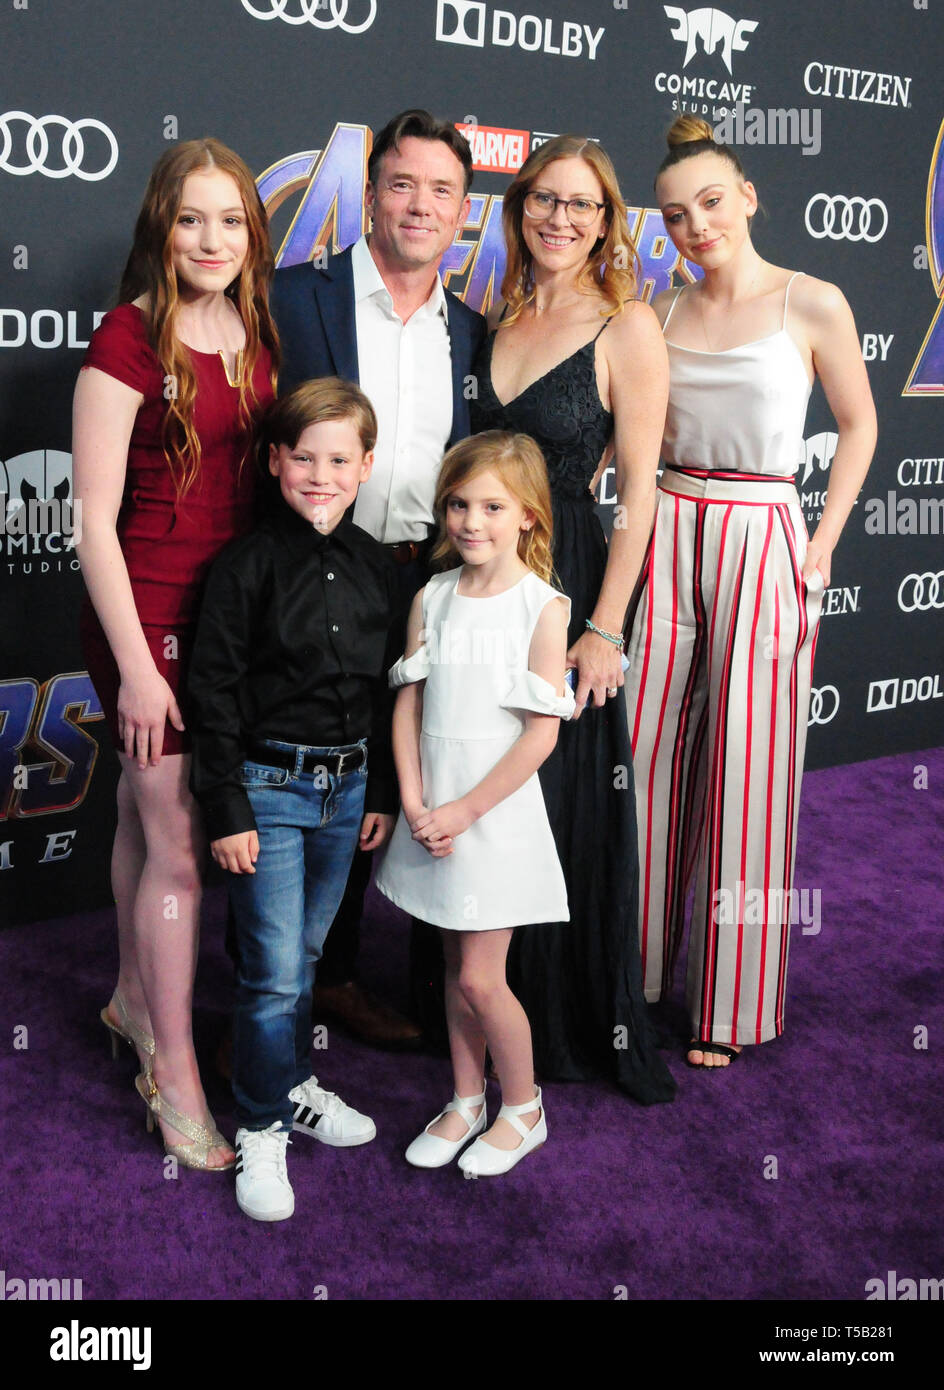 Los Angeles, California, USA. 22nd Apr, 2019. Actor/stuntman Terry Notary attends the World Premiere of Marvel Studios' 'Avengers: Endgame' on April 22, 2019 at Los Angeles Convention Center in Los Angeles, California, USA. Credit: Barry King/Alamy Live News - Stock Image